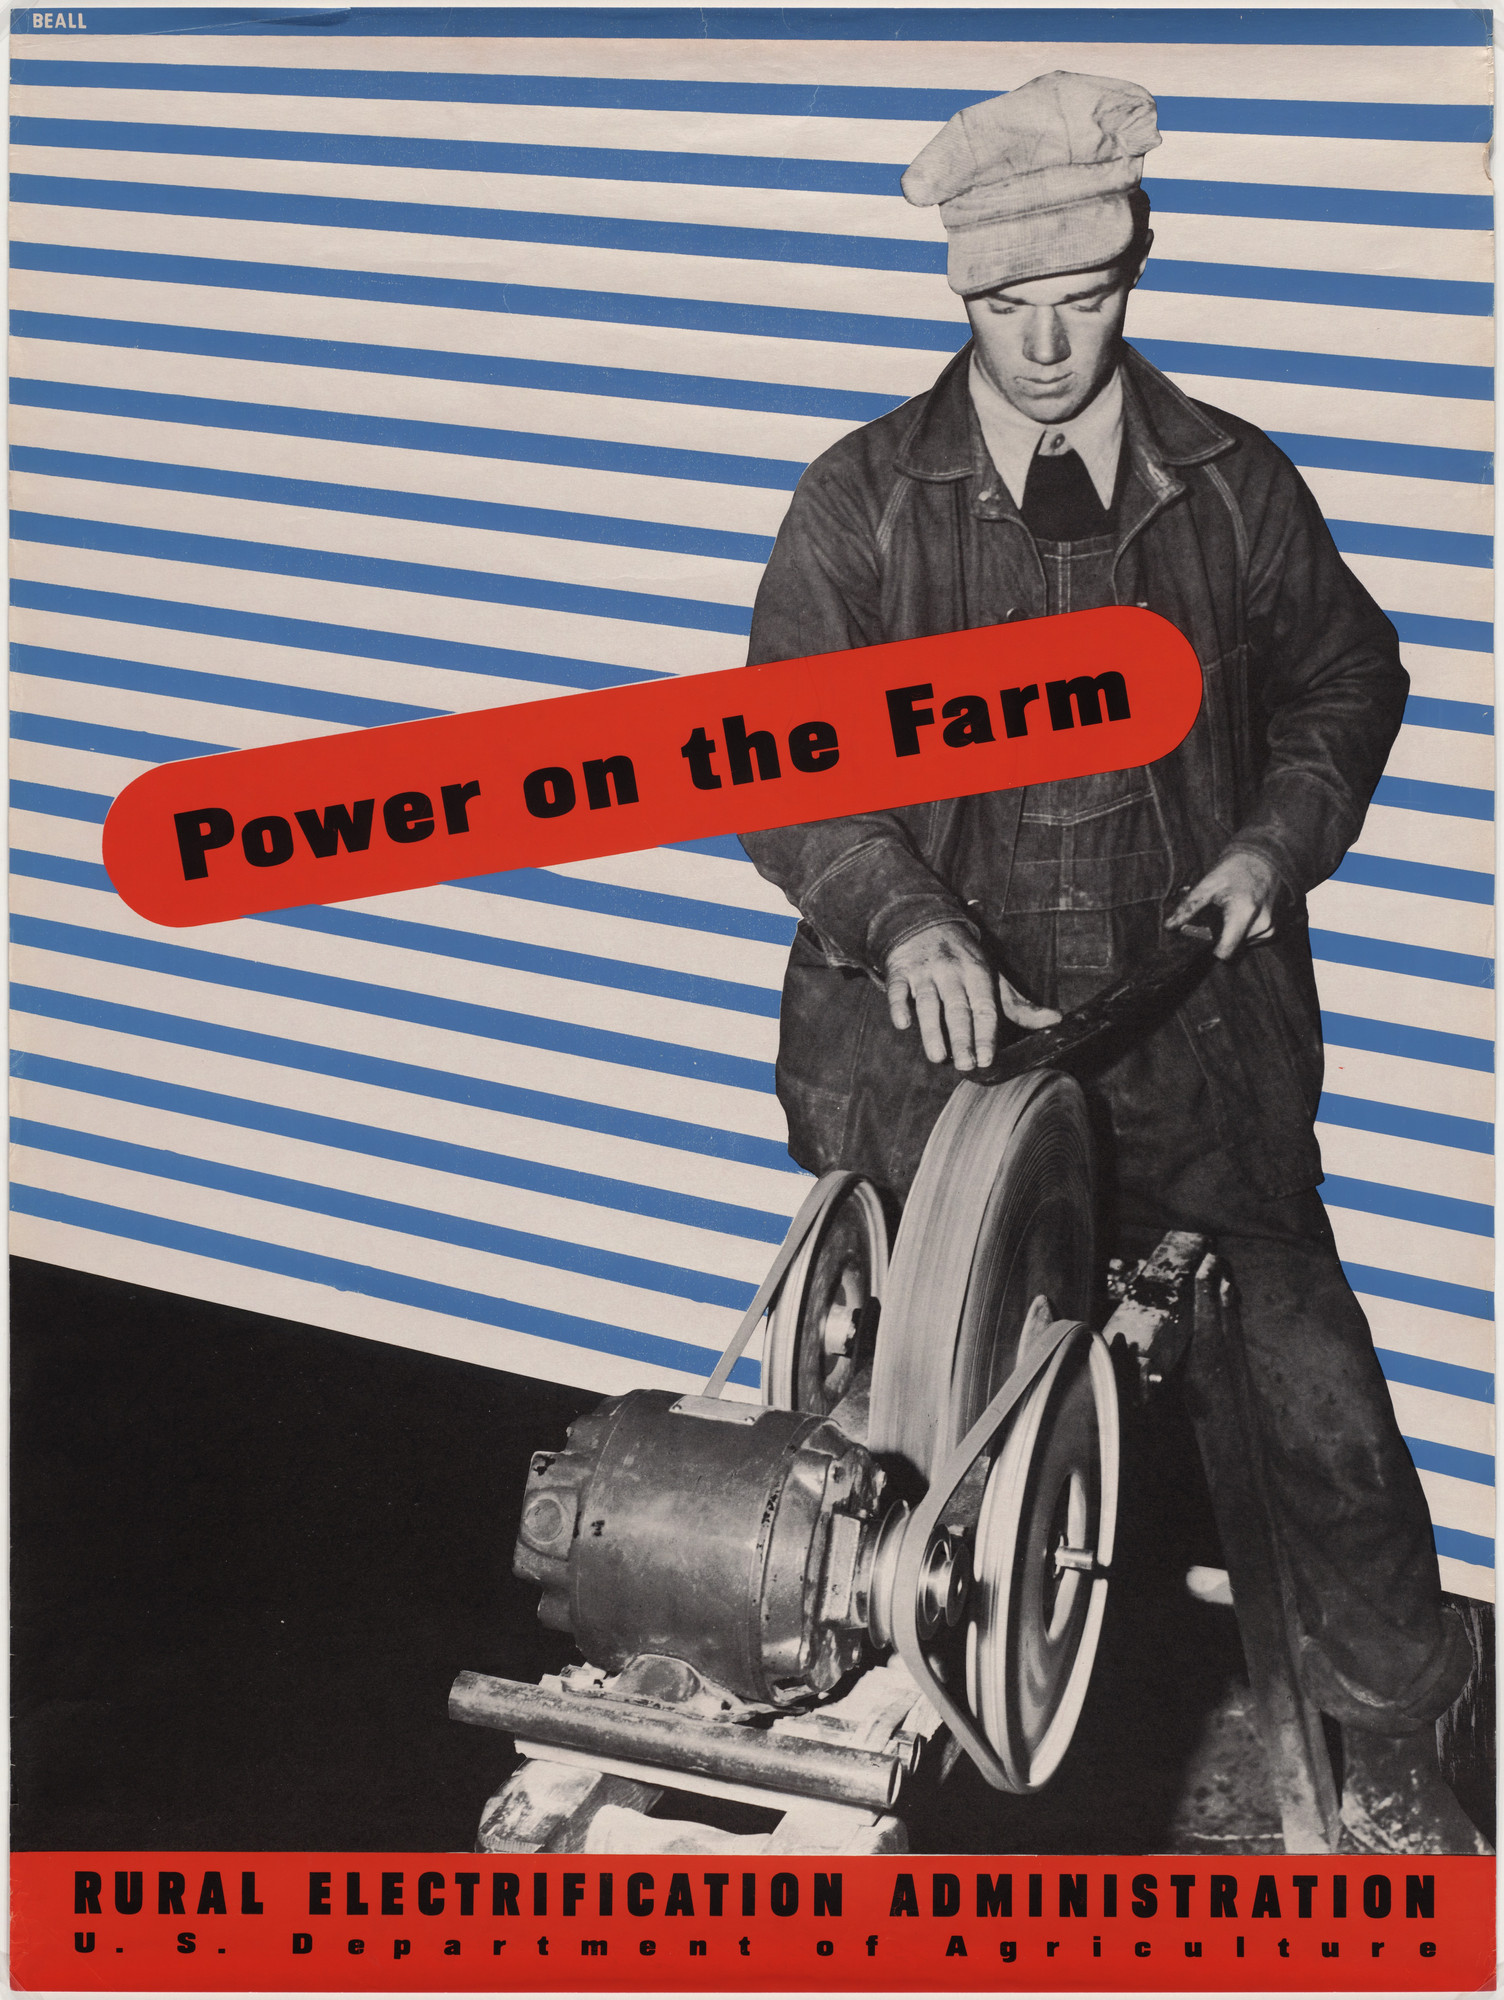 Lester Beall. Power on the Farm, Rural Electrification Administration. 1941